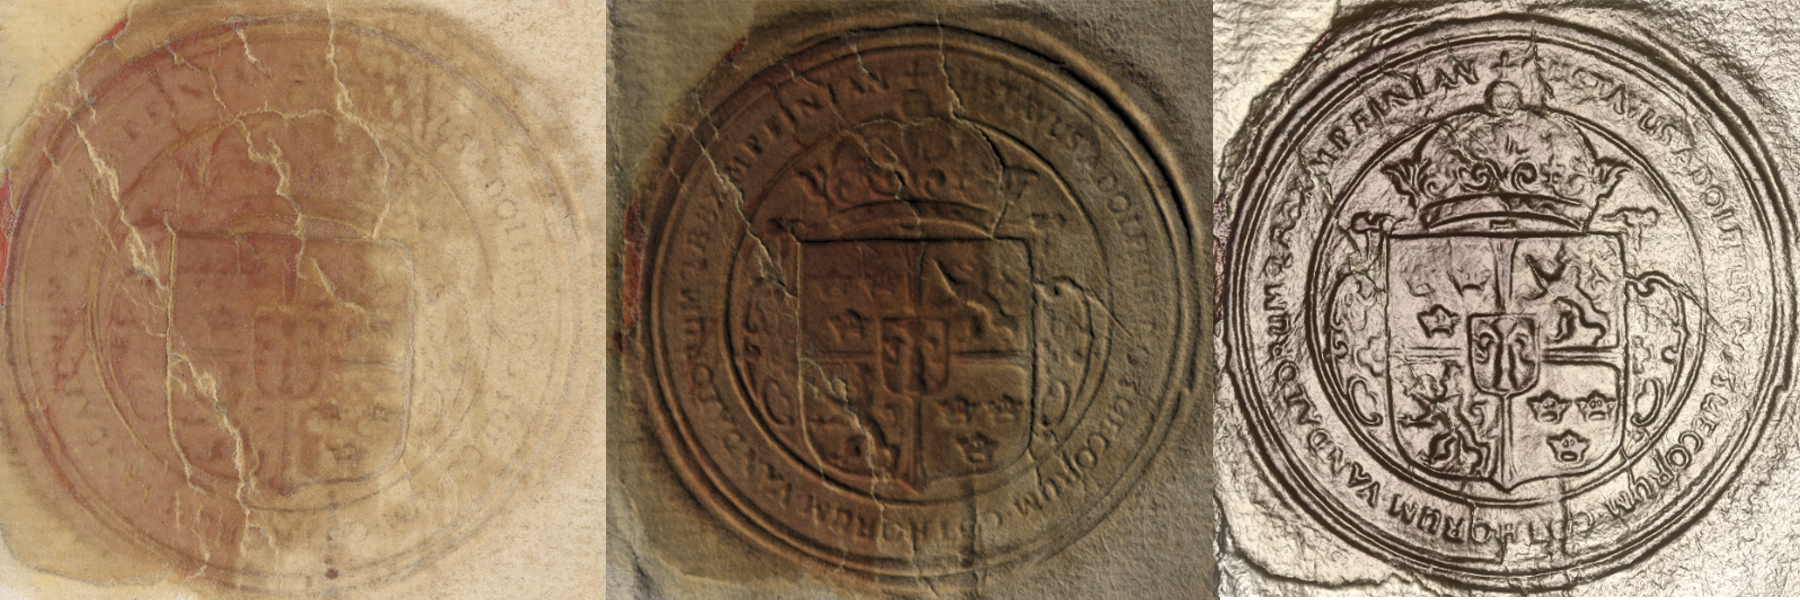 This version shows the original seal side-by-side with the ones rendered with RTI and the viewer.